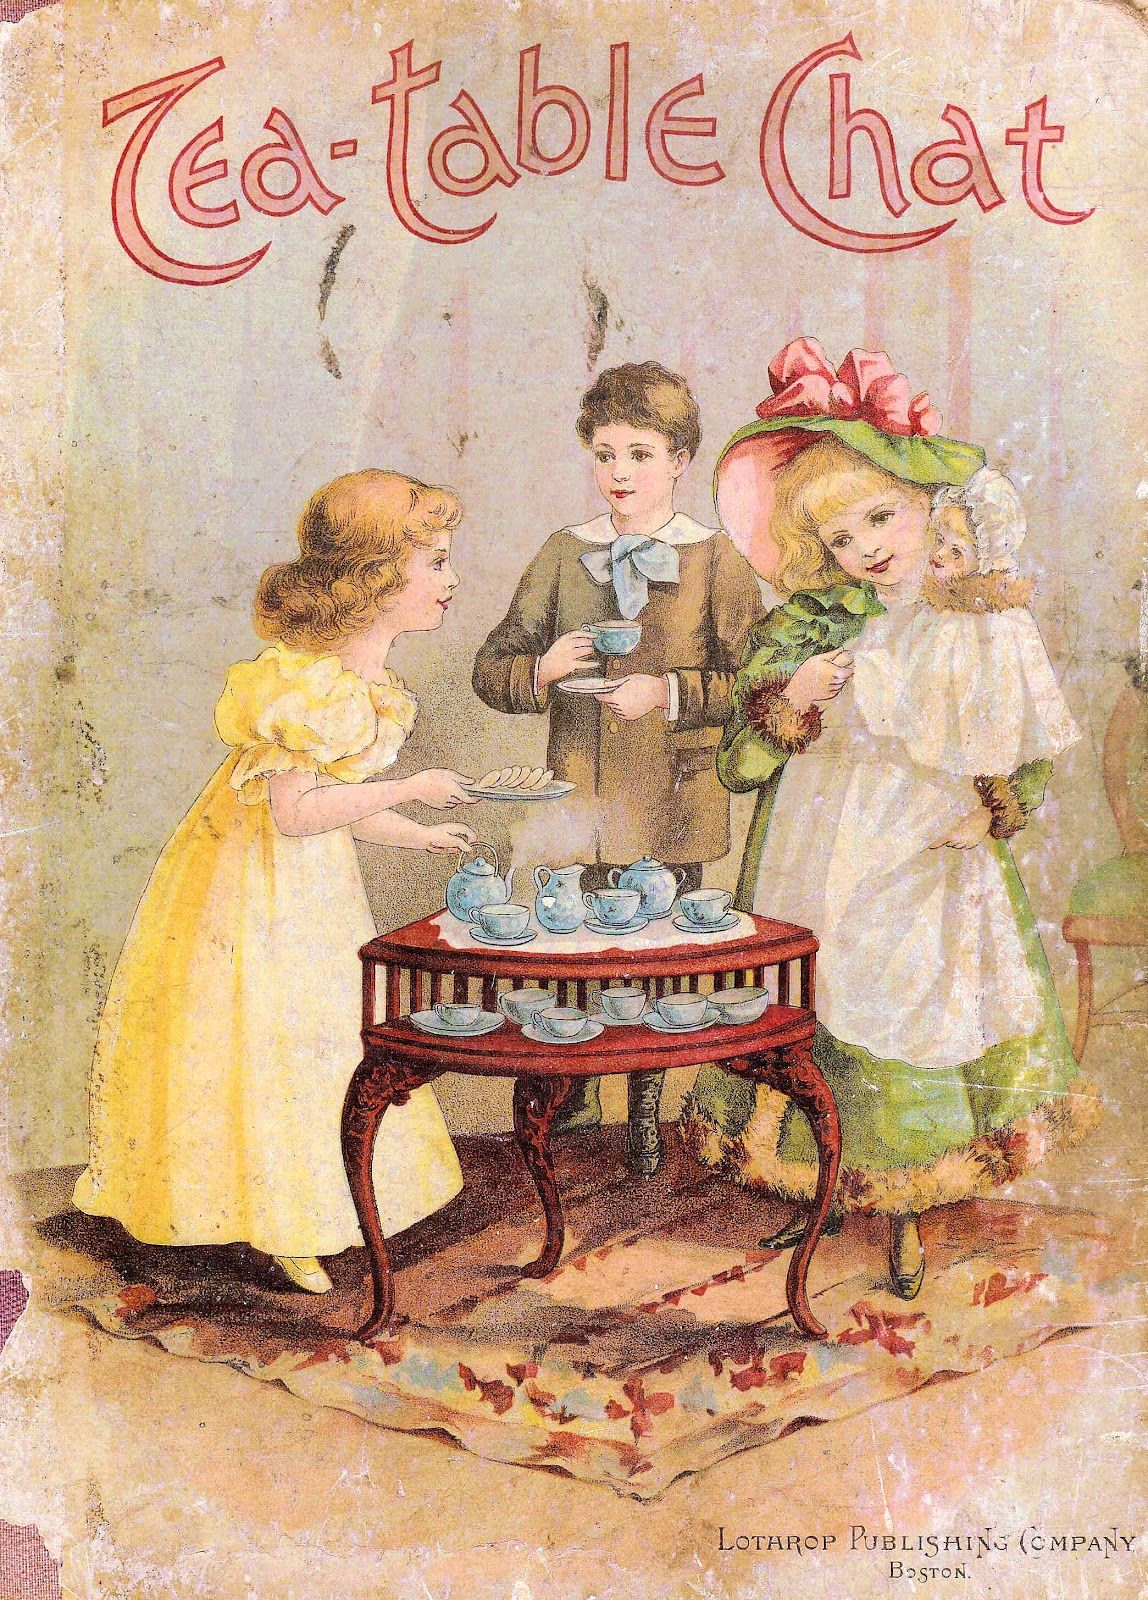 cd28dca10793 Victorian Storybook Cover with Children at Tea Party   Vintage ...